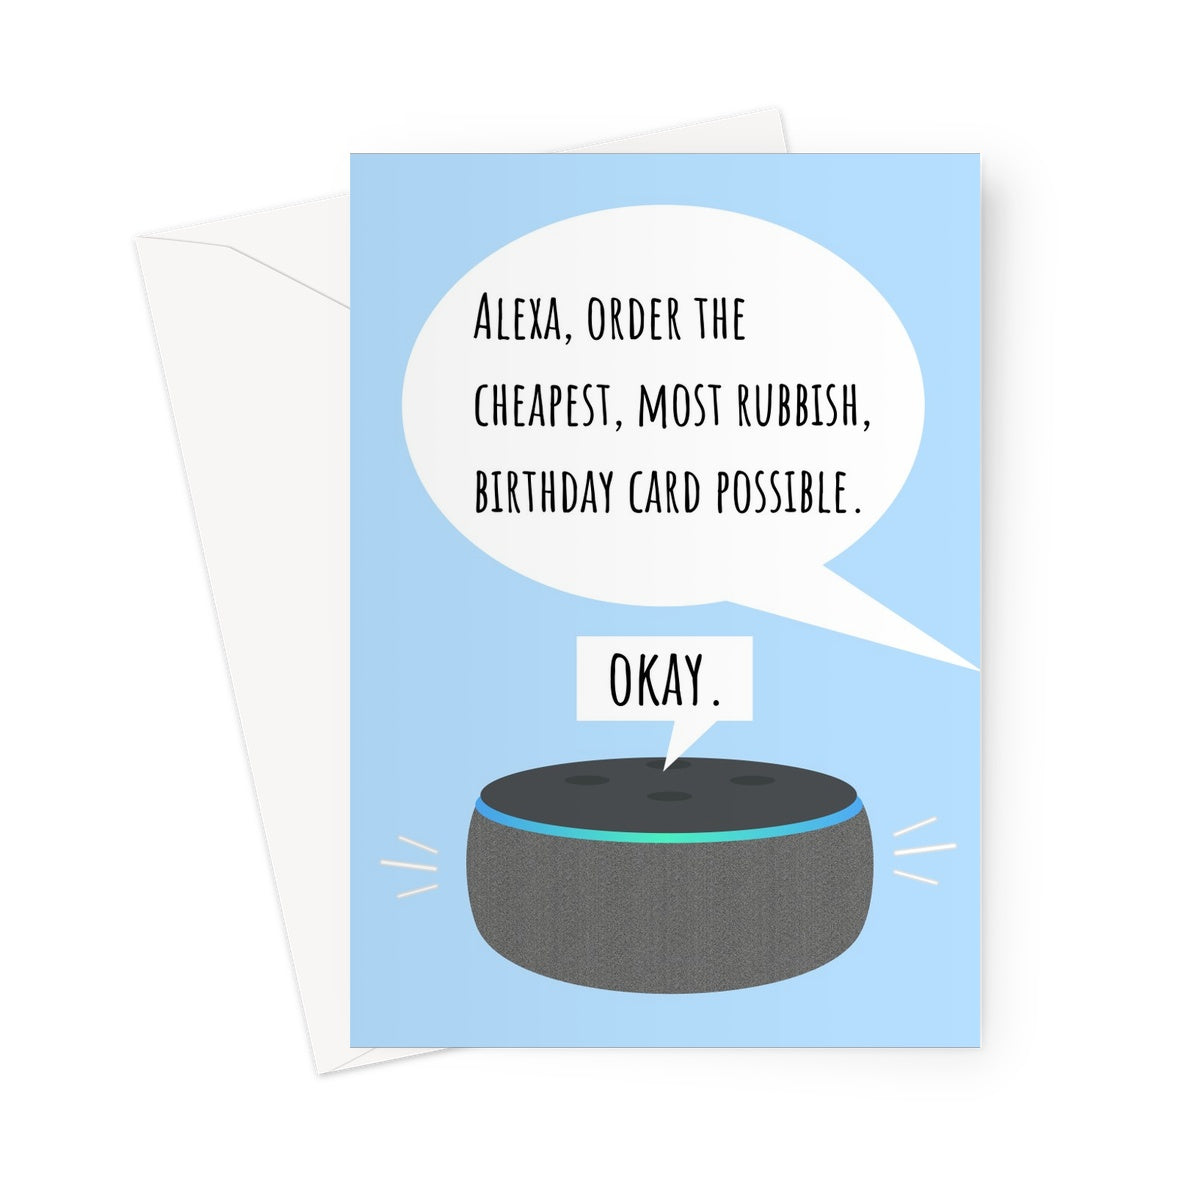 Alexa, Order the Cheapest, Most Rubbish, Birthday Card Possible / Okay / Funny Hilarious Smart Speaker Auto Correct Meme Joke Greeting Card